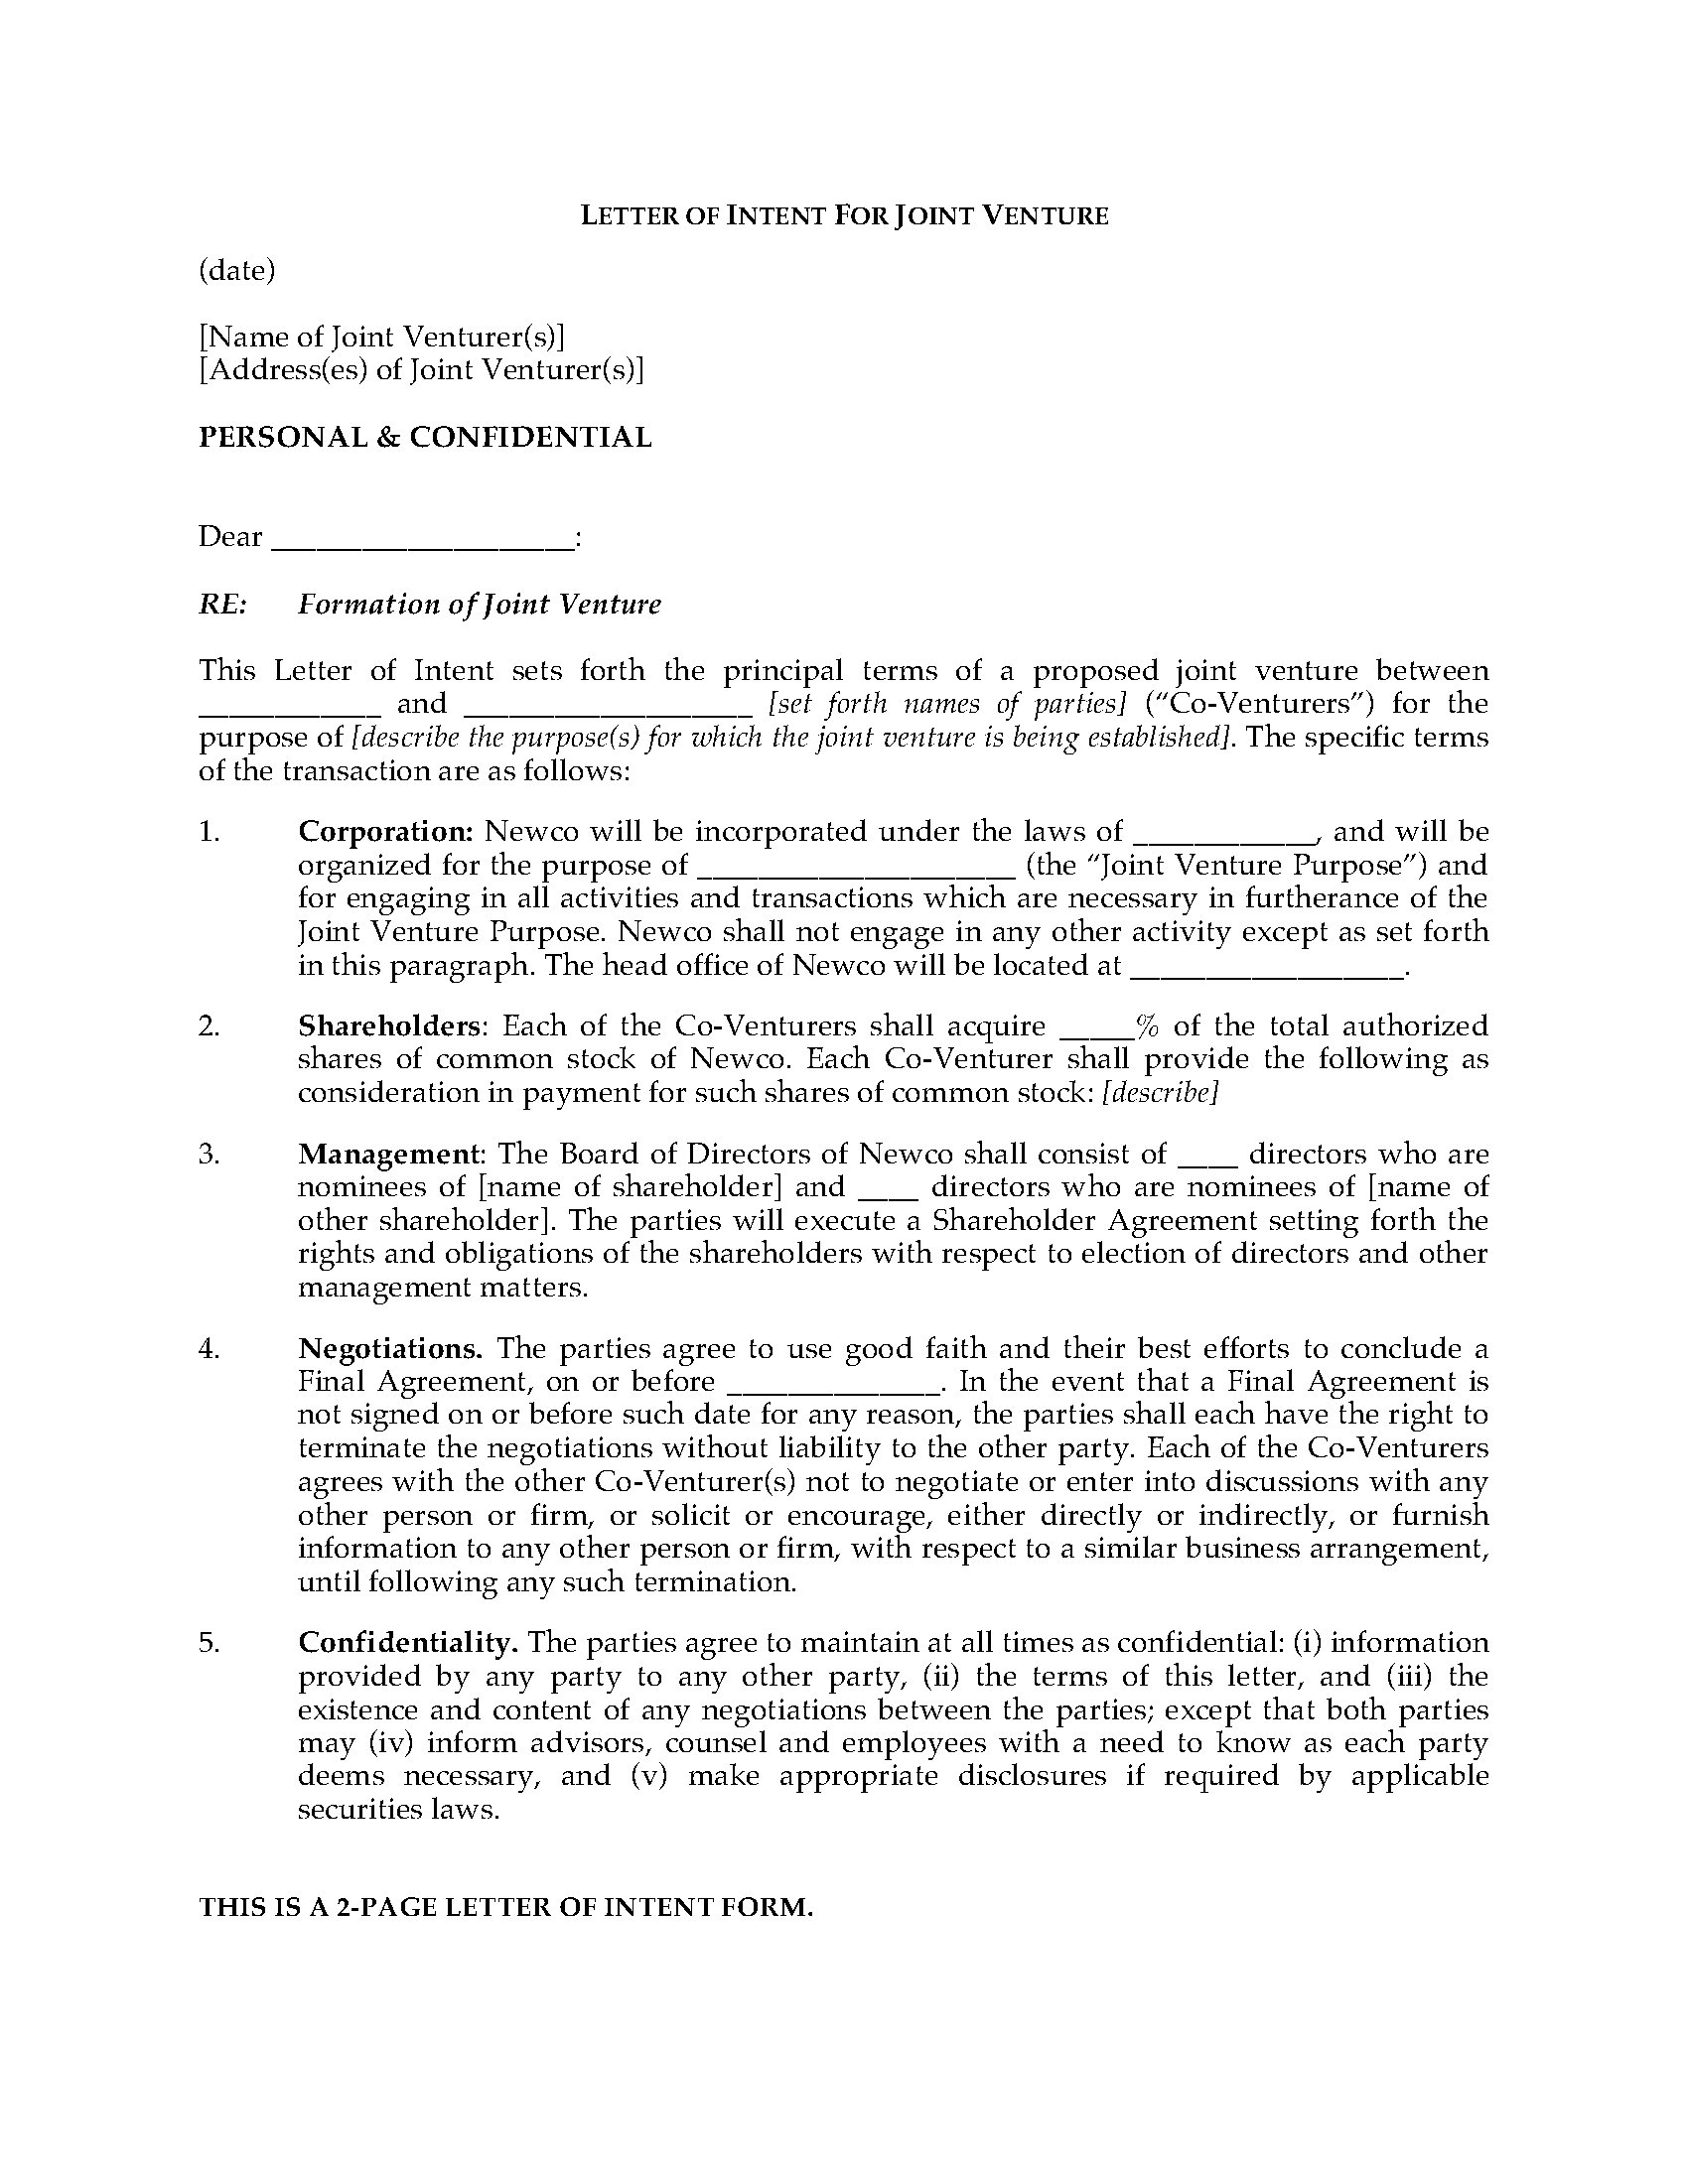 joint venture letter of intent template example-Letter Intent Legal Definition s High To Form Joint Venture Forms And Business 13-n